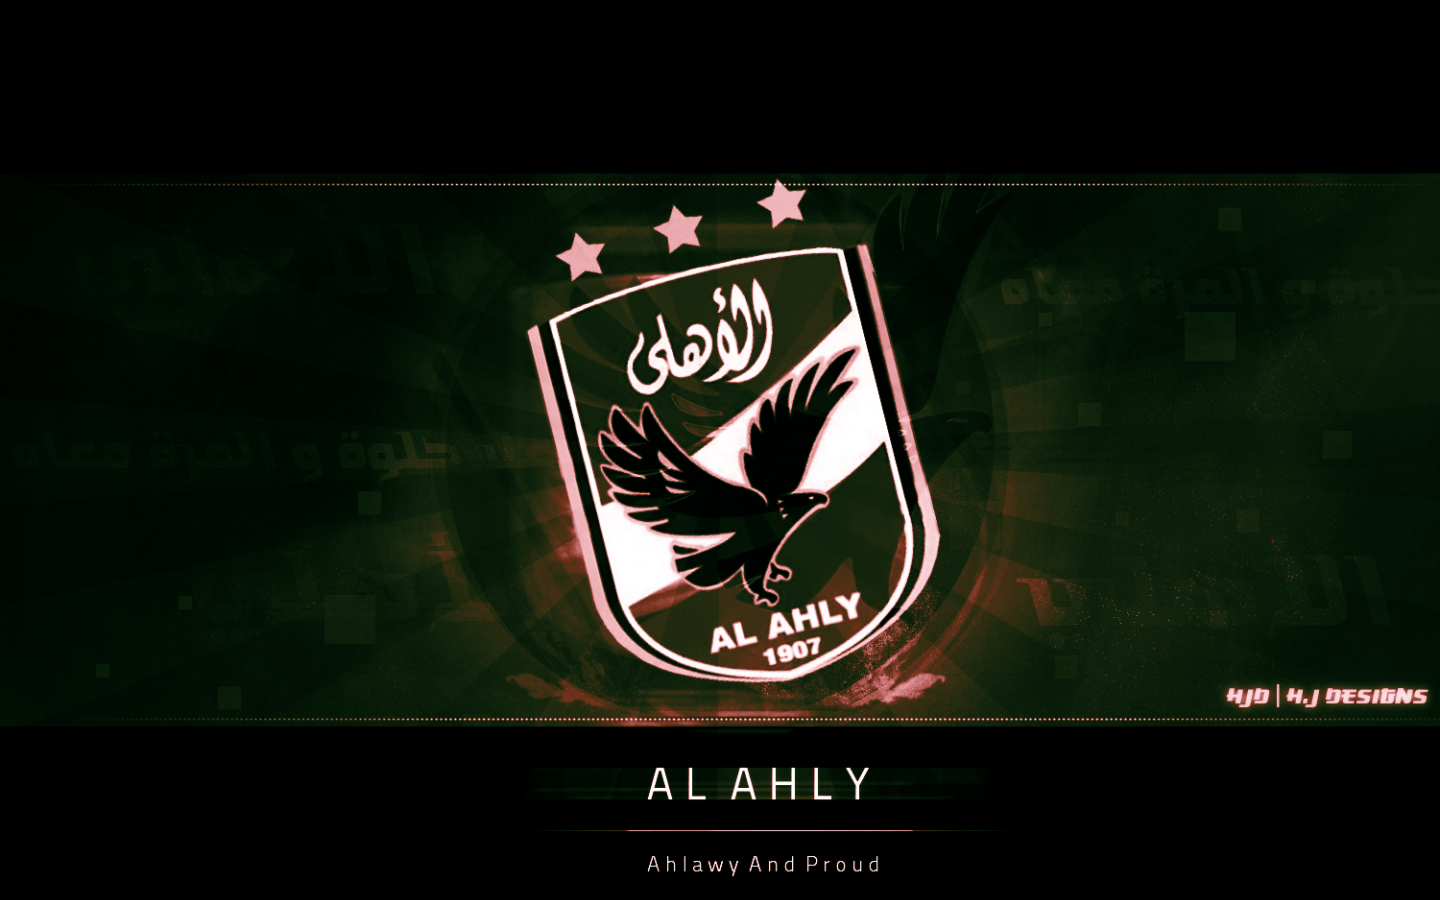 Free Download Al Ahly Wallpaper By Hanymania 1500x1000 For Your Desktop Mobile Tablet Explore 23 Ahly Wallpaper Ahly Wallpaper